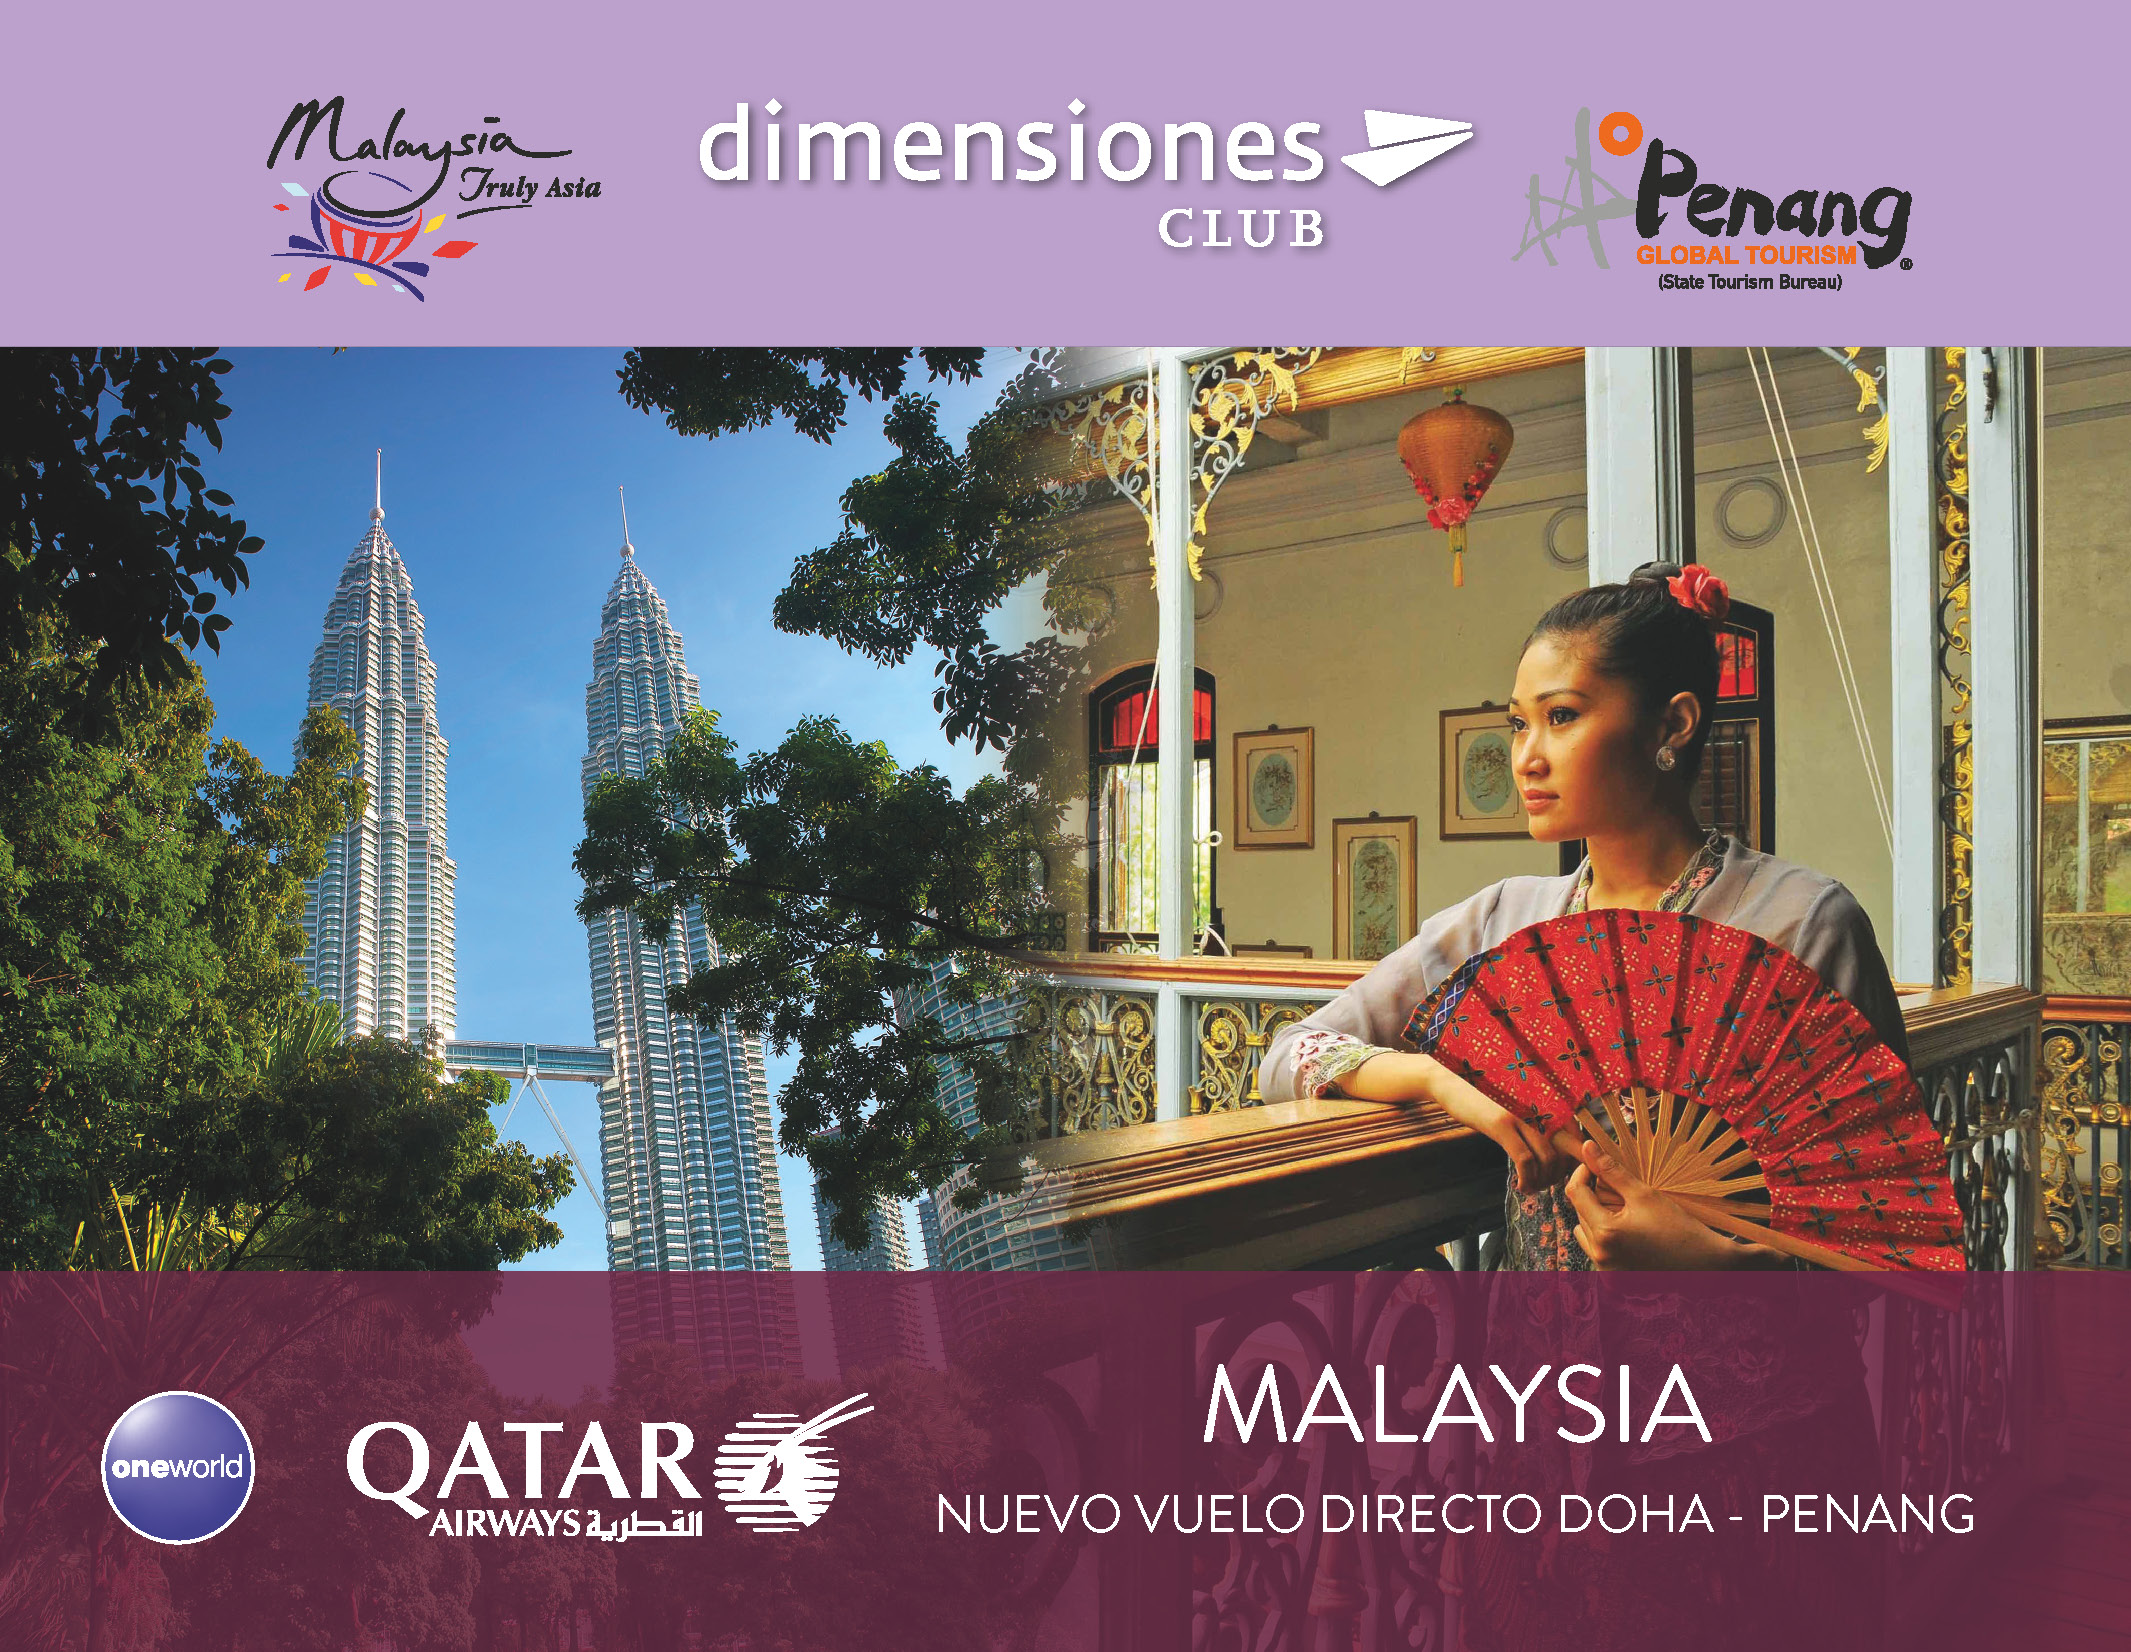 Catalogo Dimensiones Club Malasia 2018